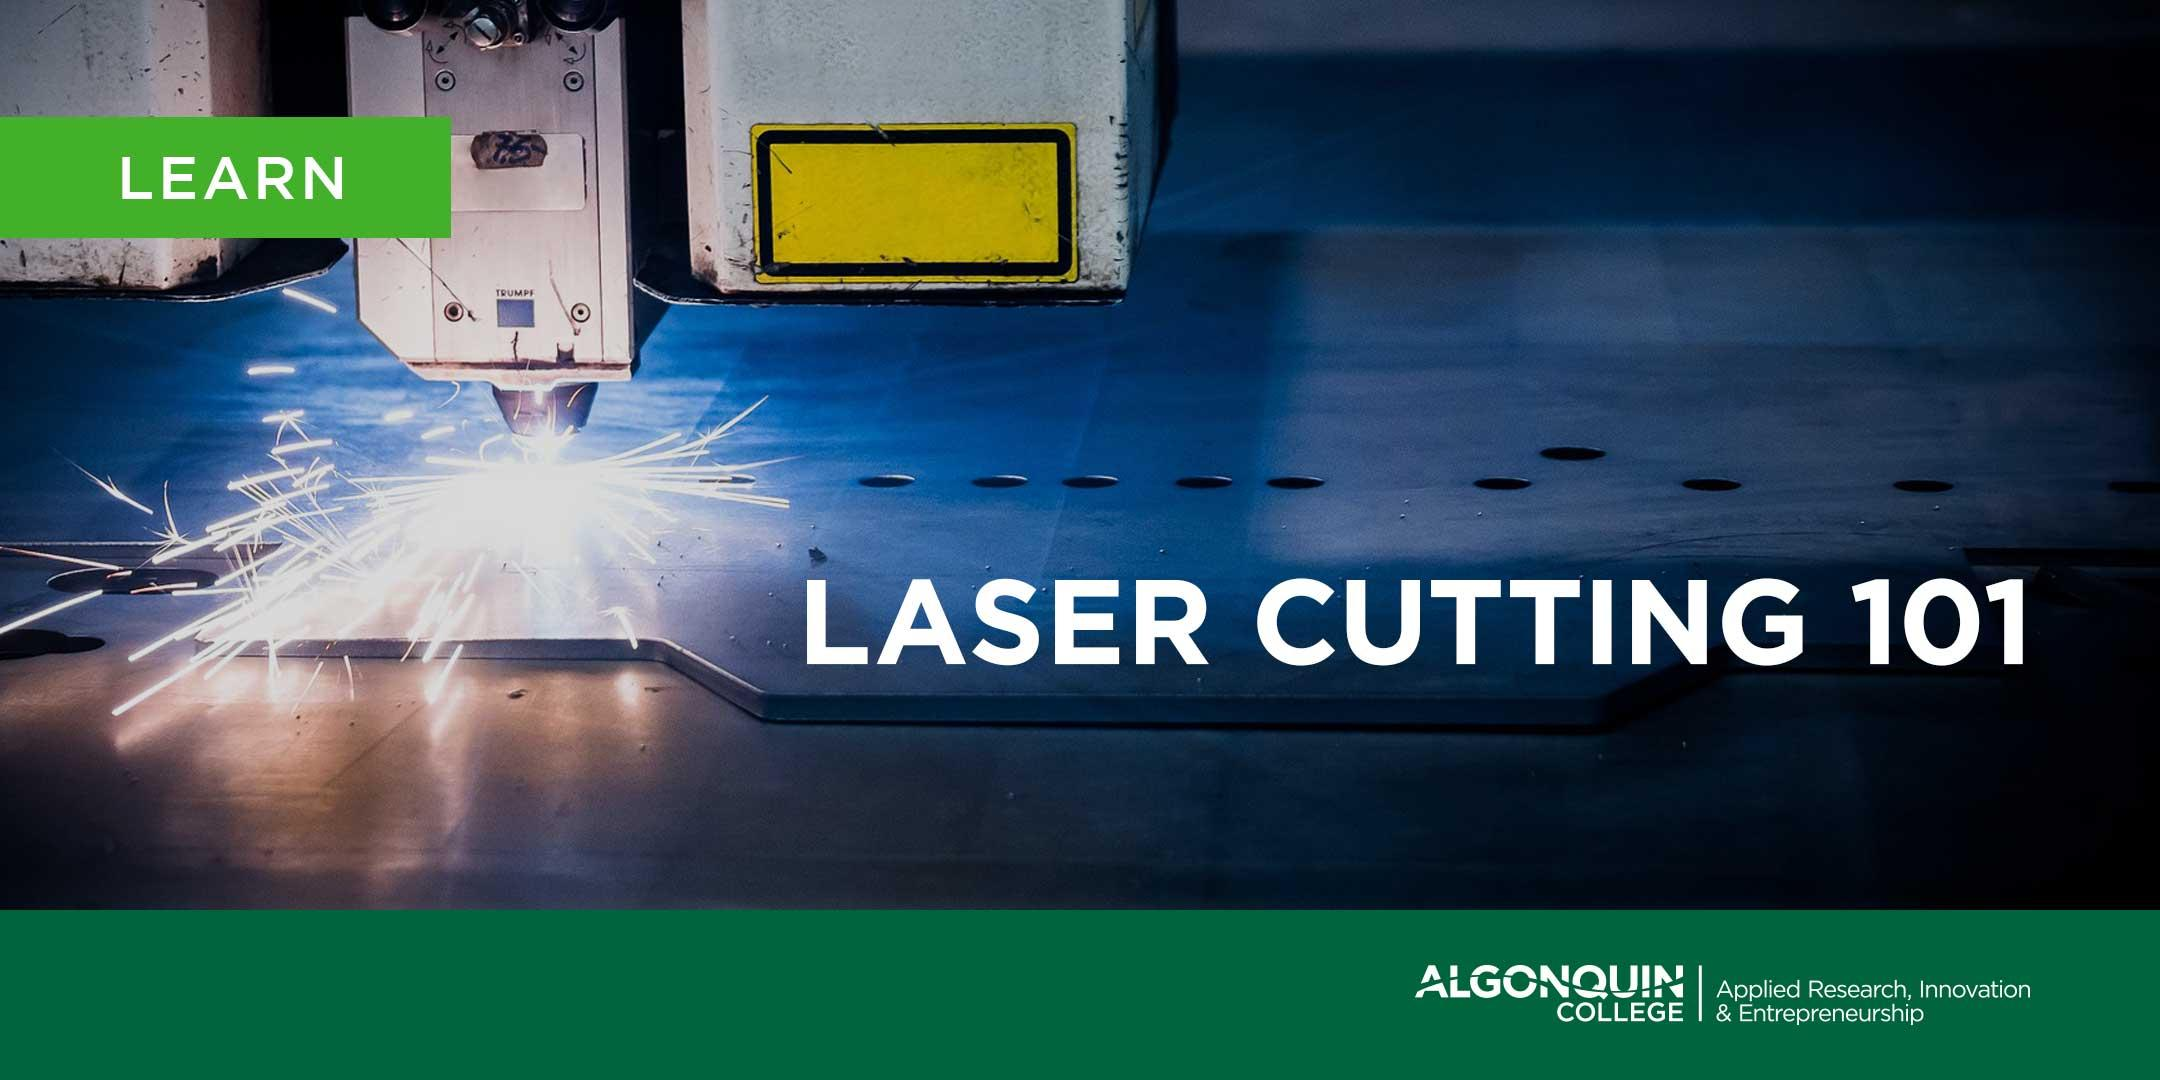 Algonquin College MakerSpace: Laser Cutting 101